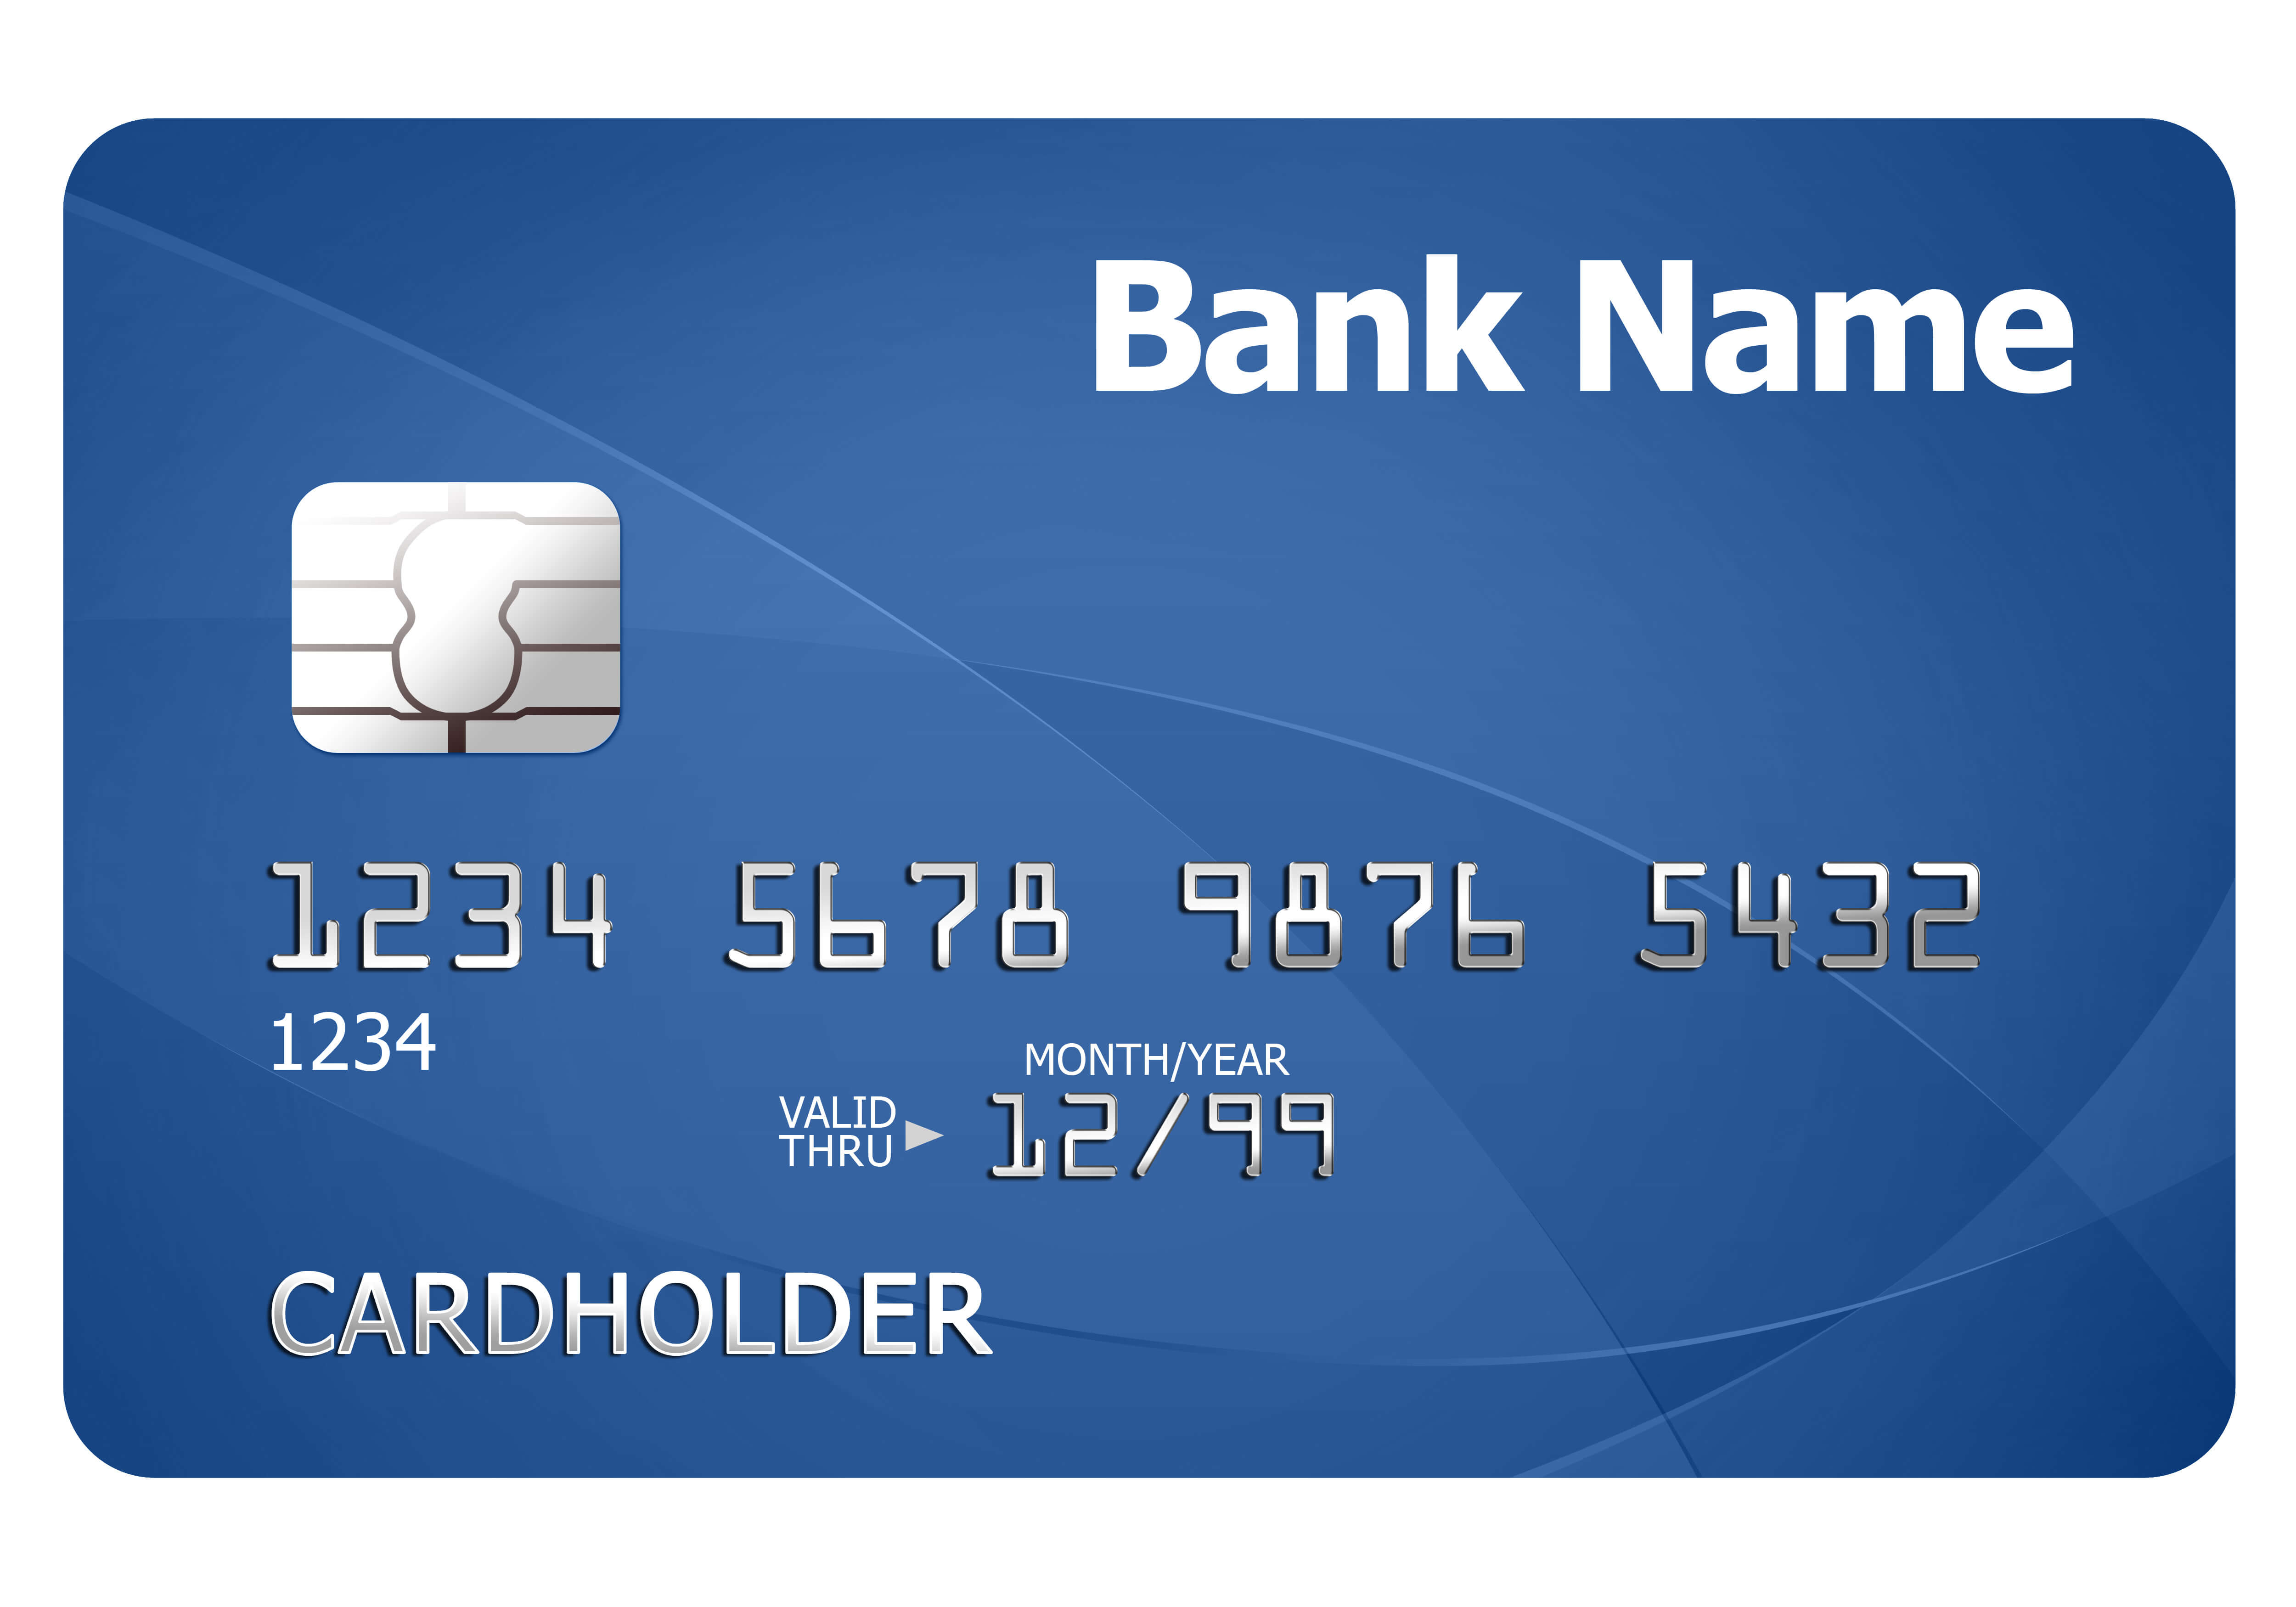 Credit Card Template | Psdgraphics regarding Credit Card Size Template For Word